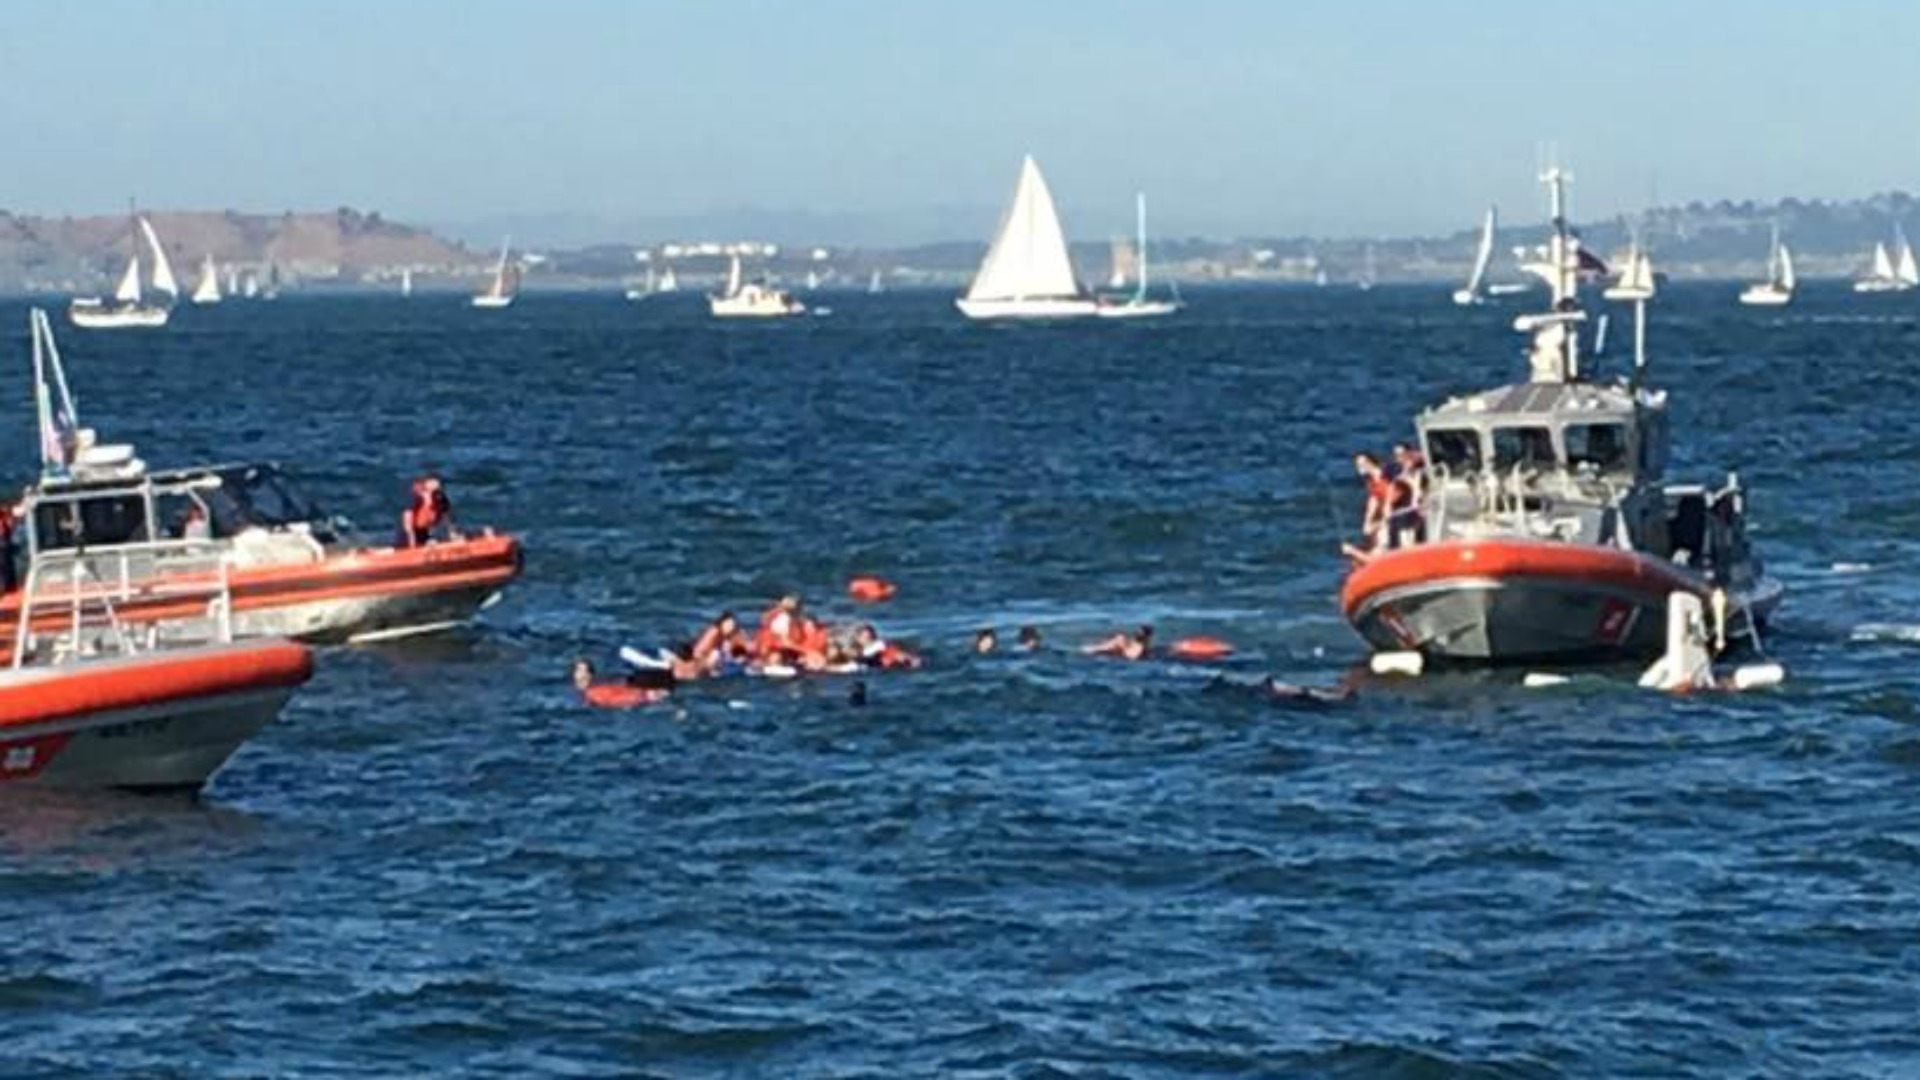 Rescue crews work to pluck people from the San Francisco Bay after a boat capsized (Oct. 8, 2016).